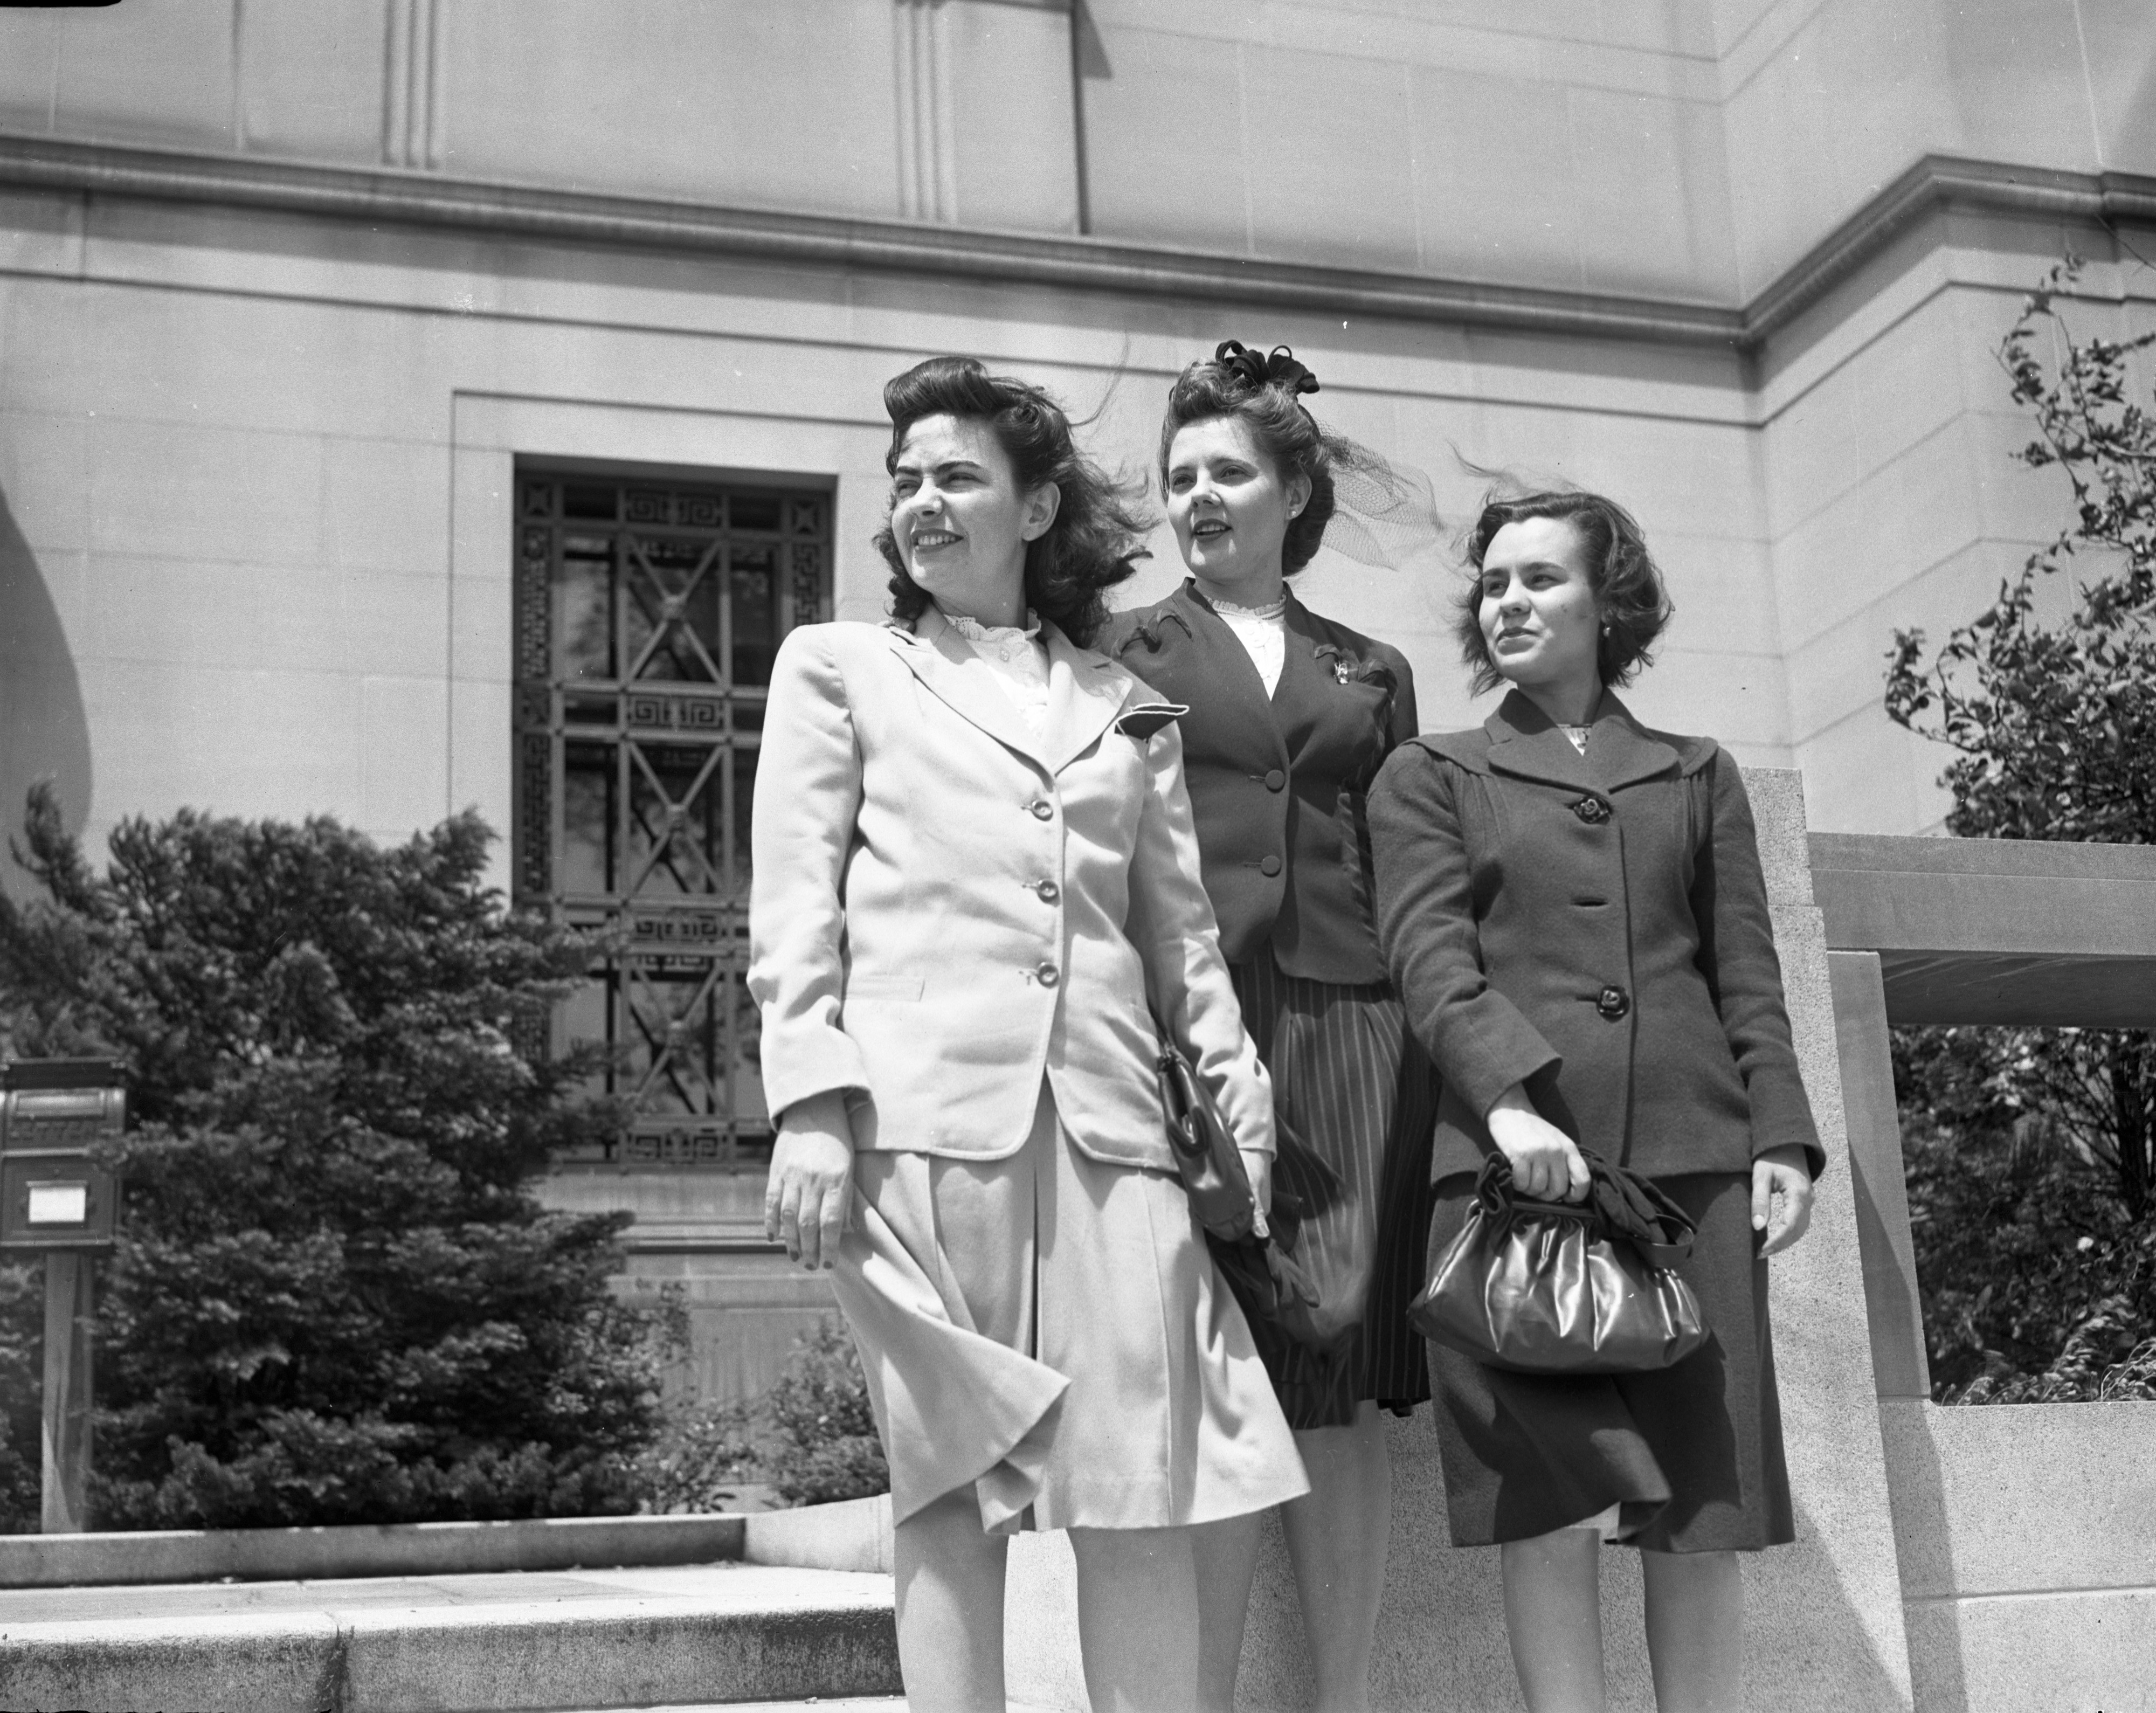 U-M Students From South America On Steps Of Rackham, June 1945 image